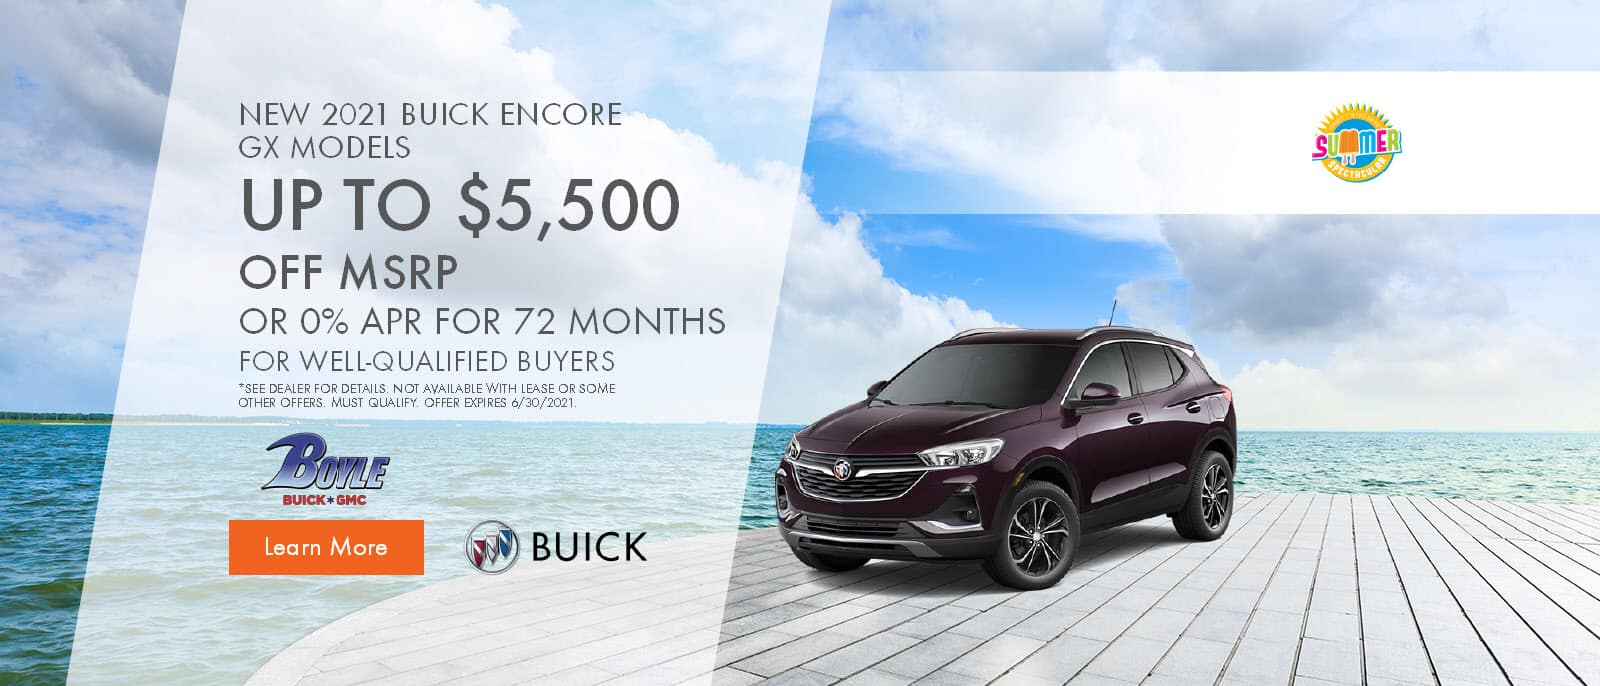 Up to $5,500 Off MSRP